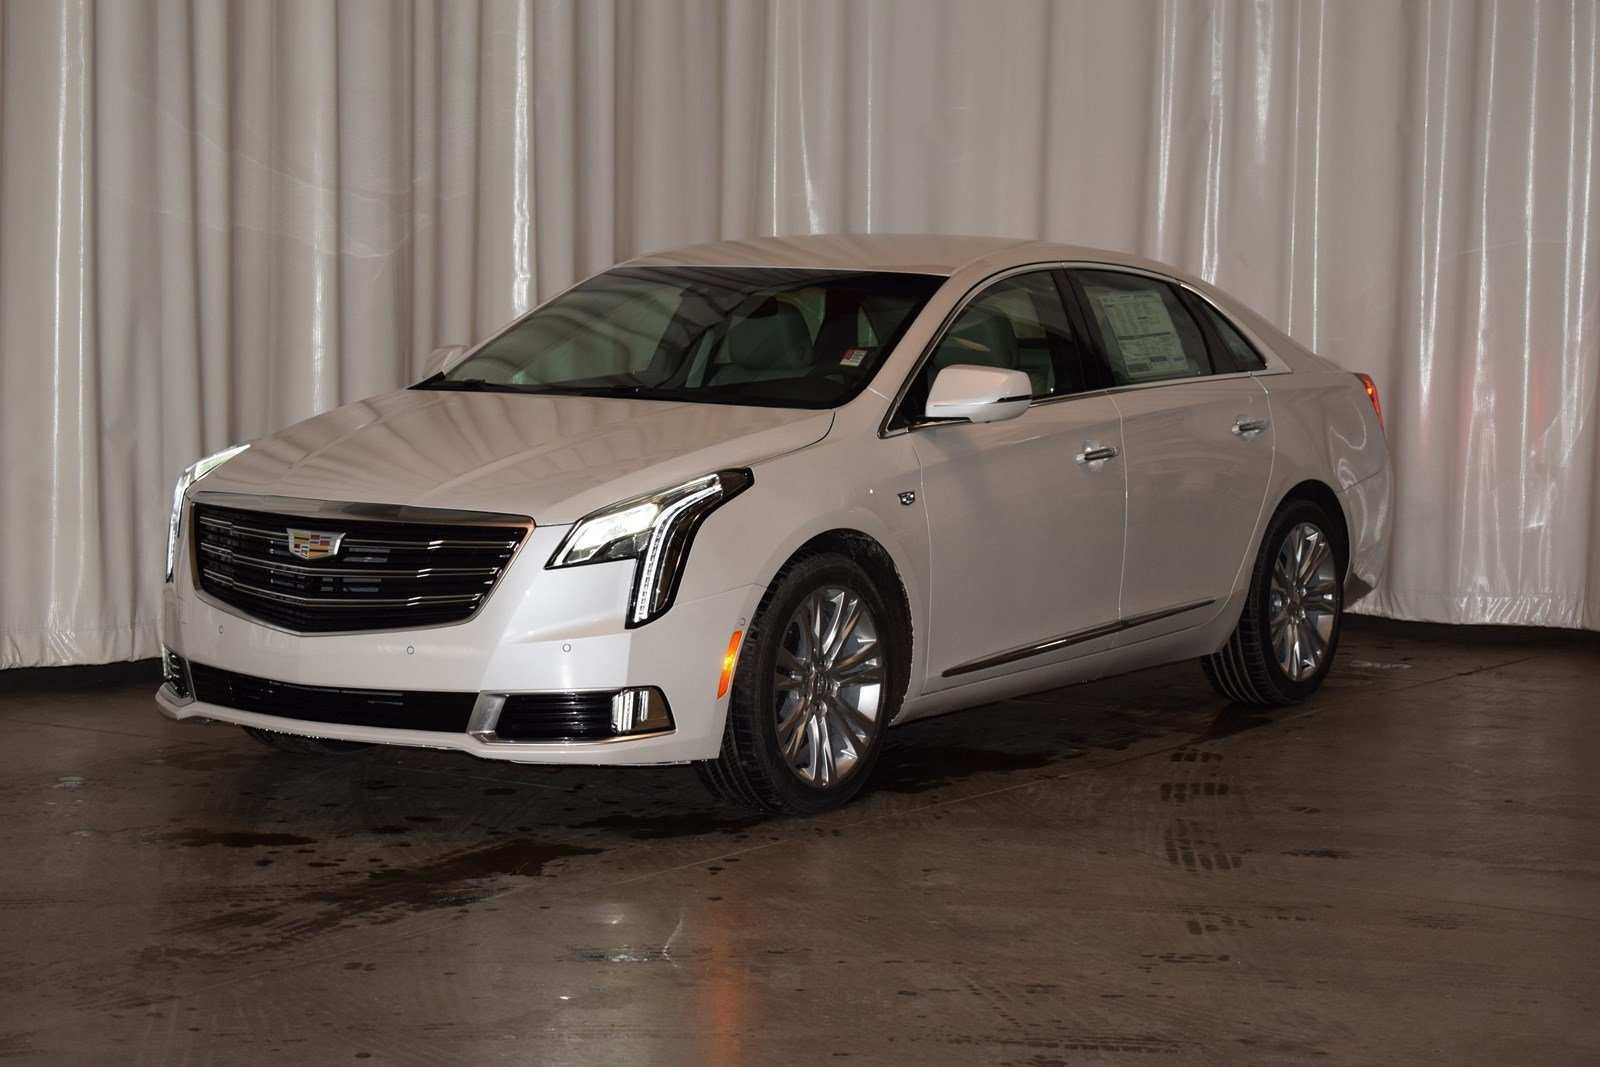 42 All New 2019 Candillac Xts Performance